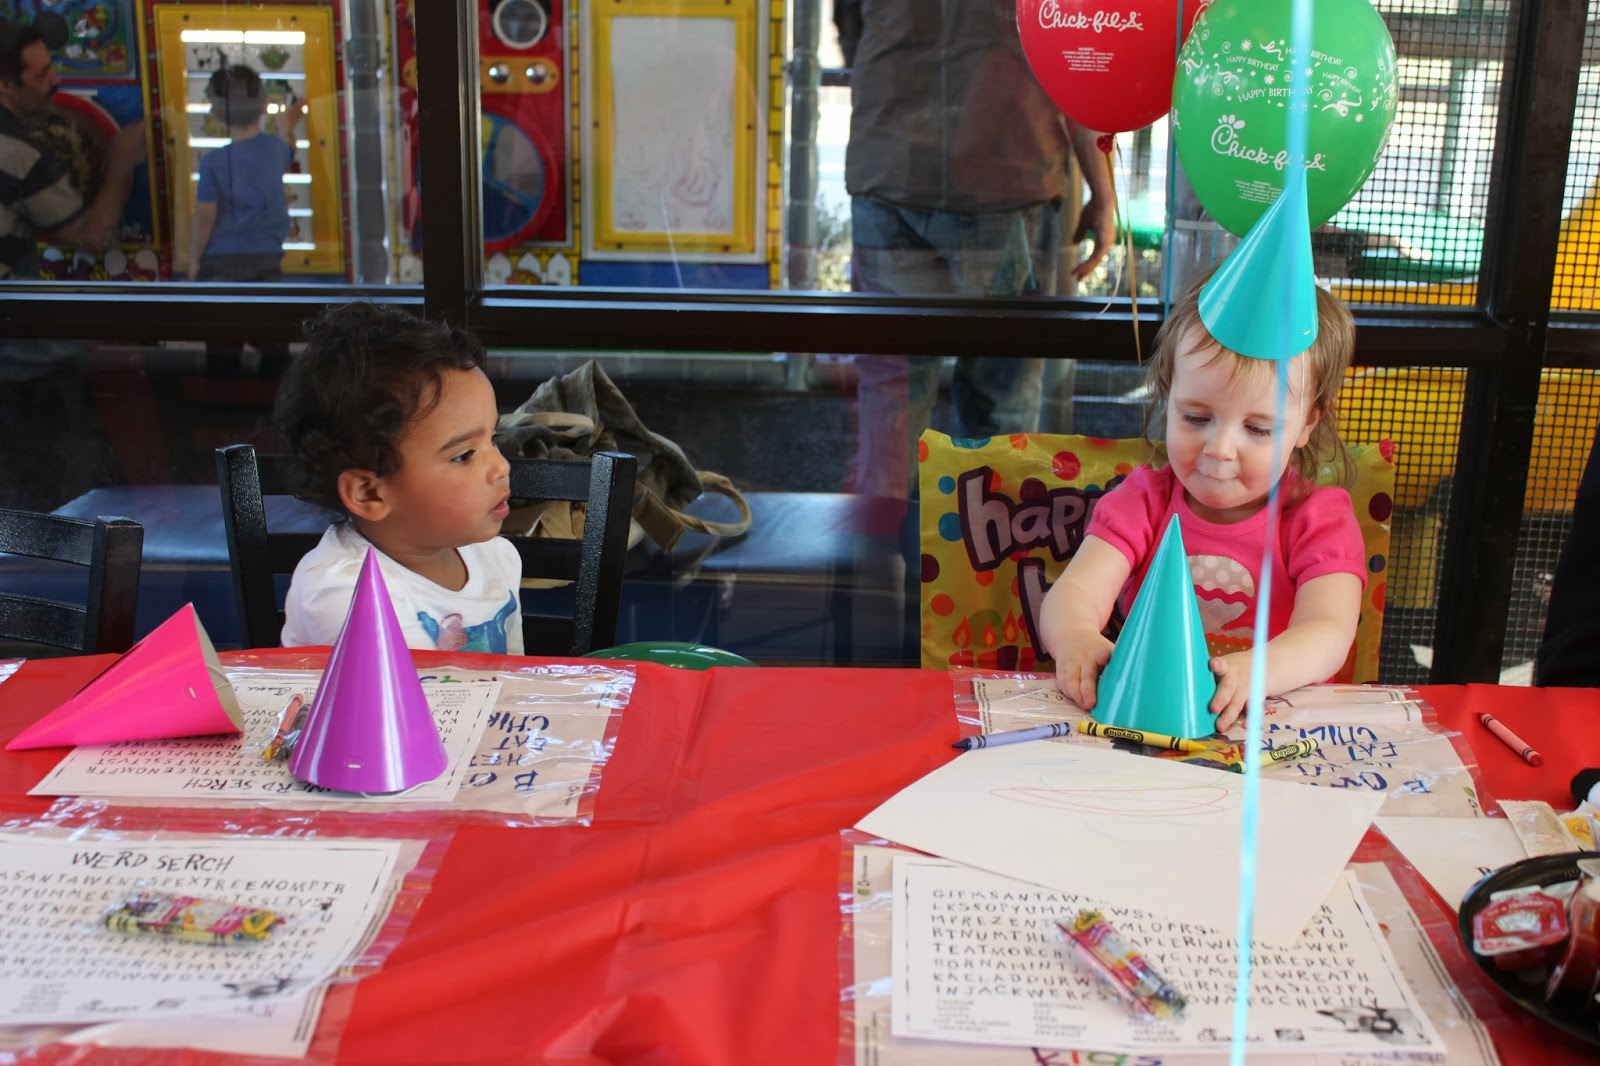 chick fil a birthday party